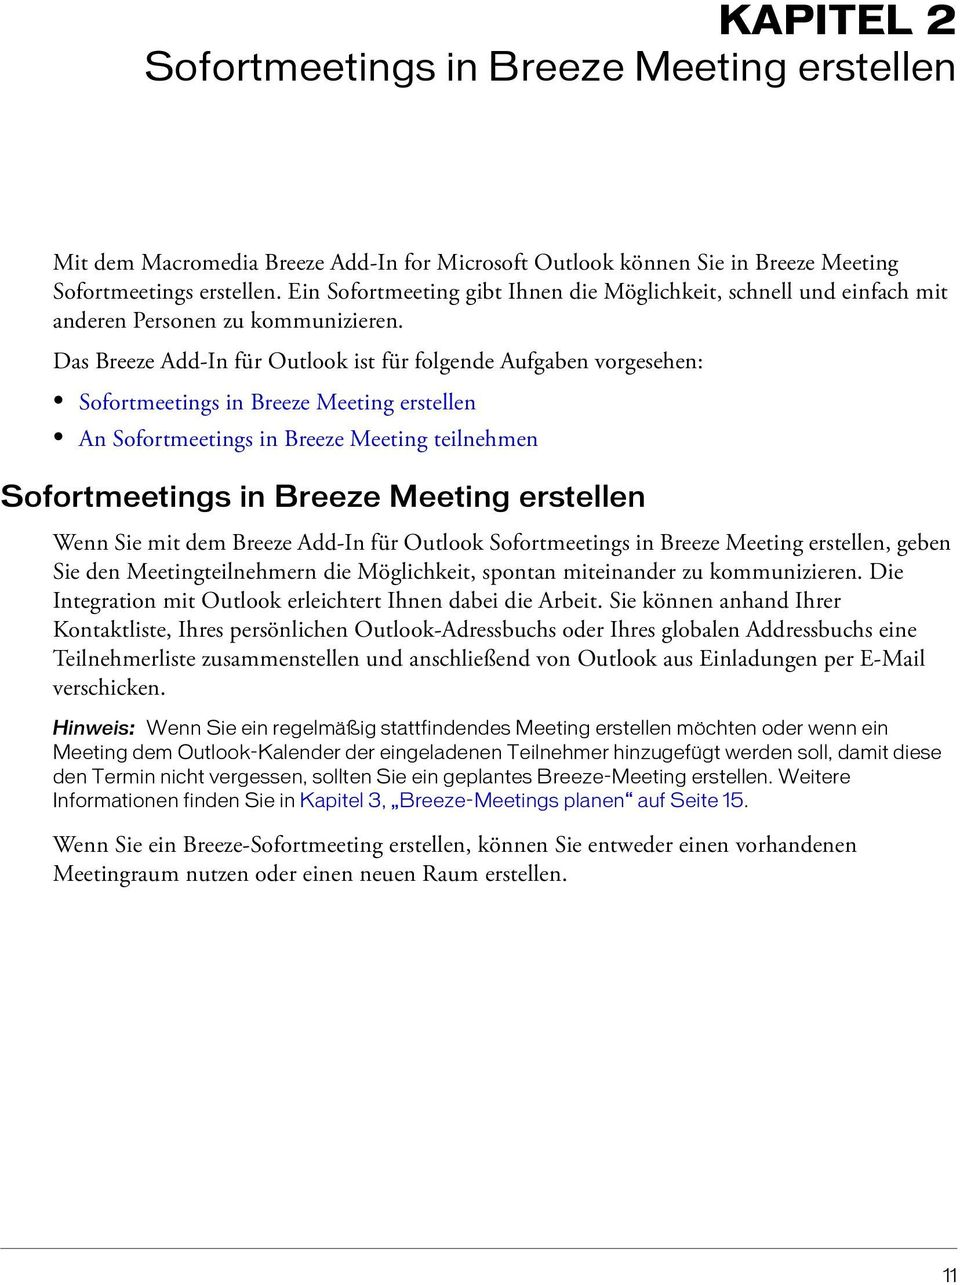 Das Breeze Add-In für Outlook ist für folgende Aufgaben vorgesehen: Sofortmeetings in Breeze Meeting erstellen An Sofortmeetings in Breeze Meeting teilnehmen Sofortmeetings in Breeze Meeting